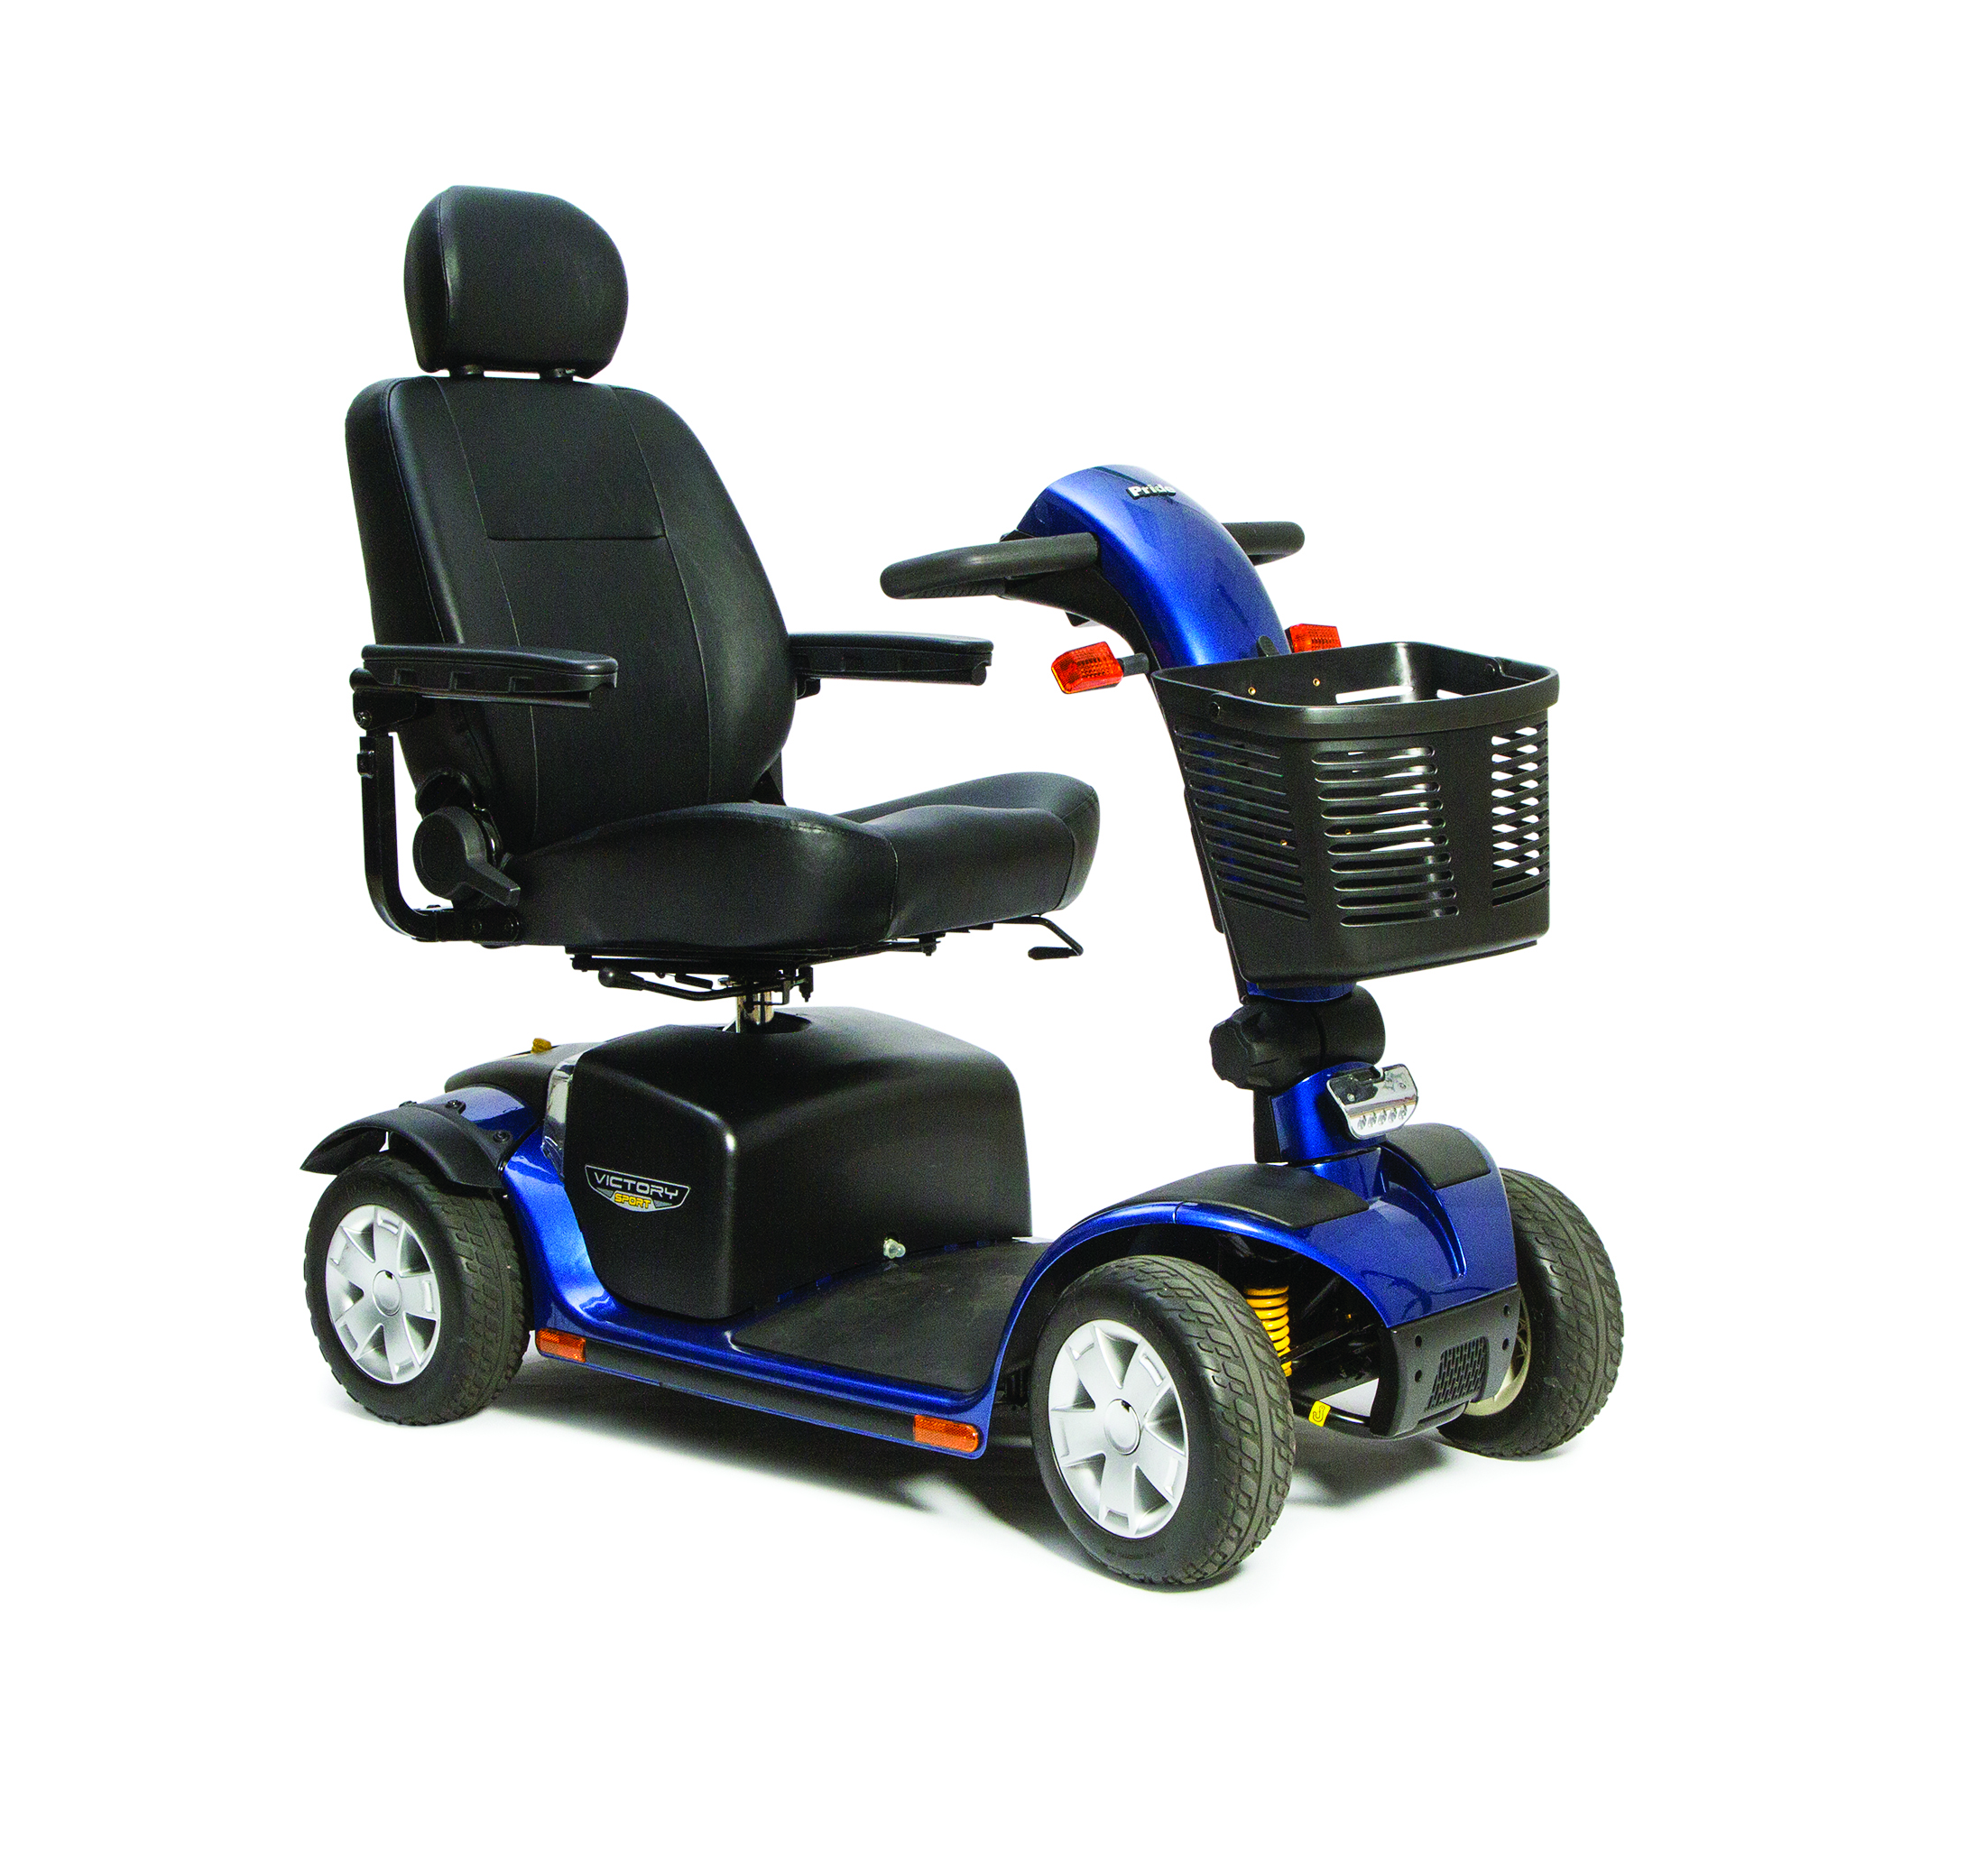 kd luxury chair amazon wheelchairs source image ultralight smart com